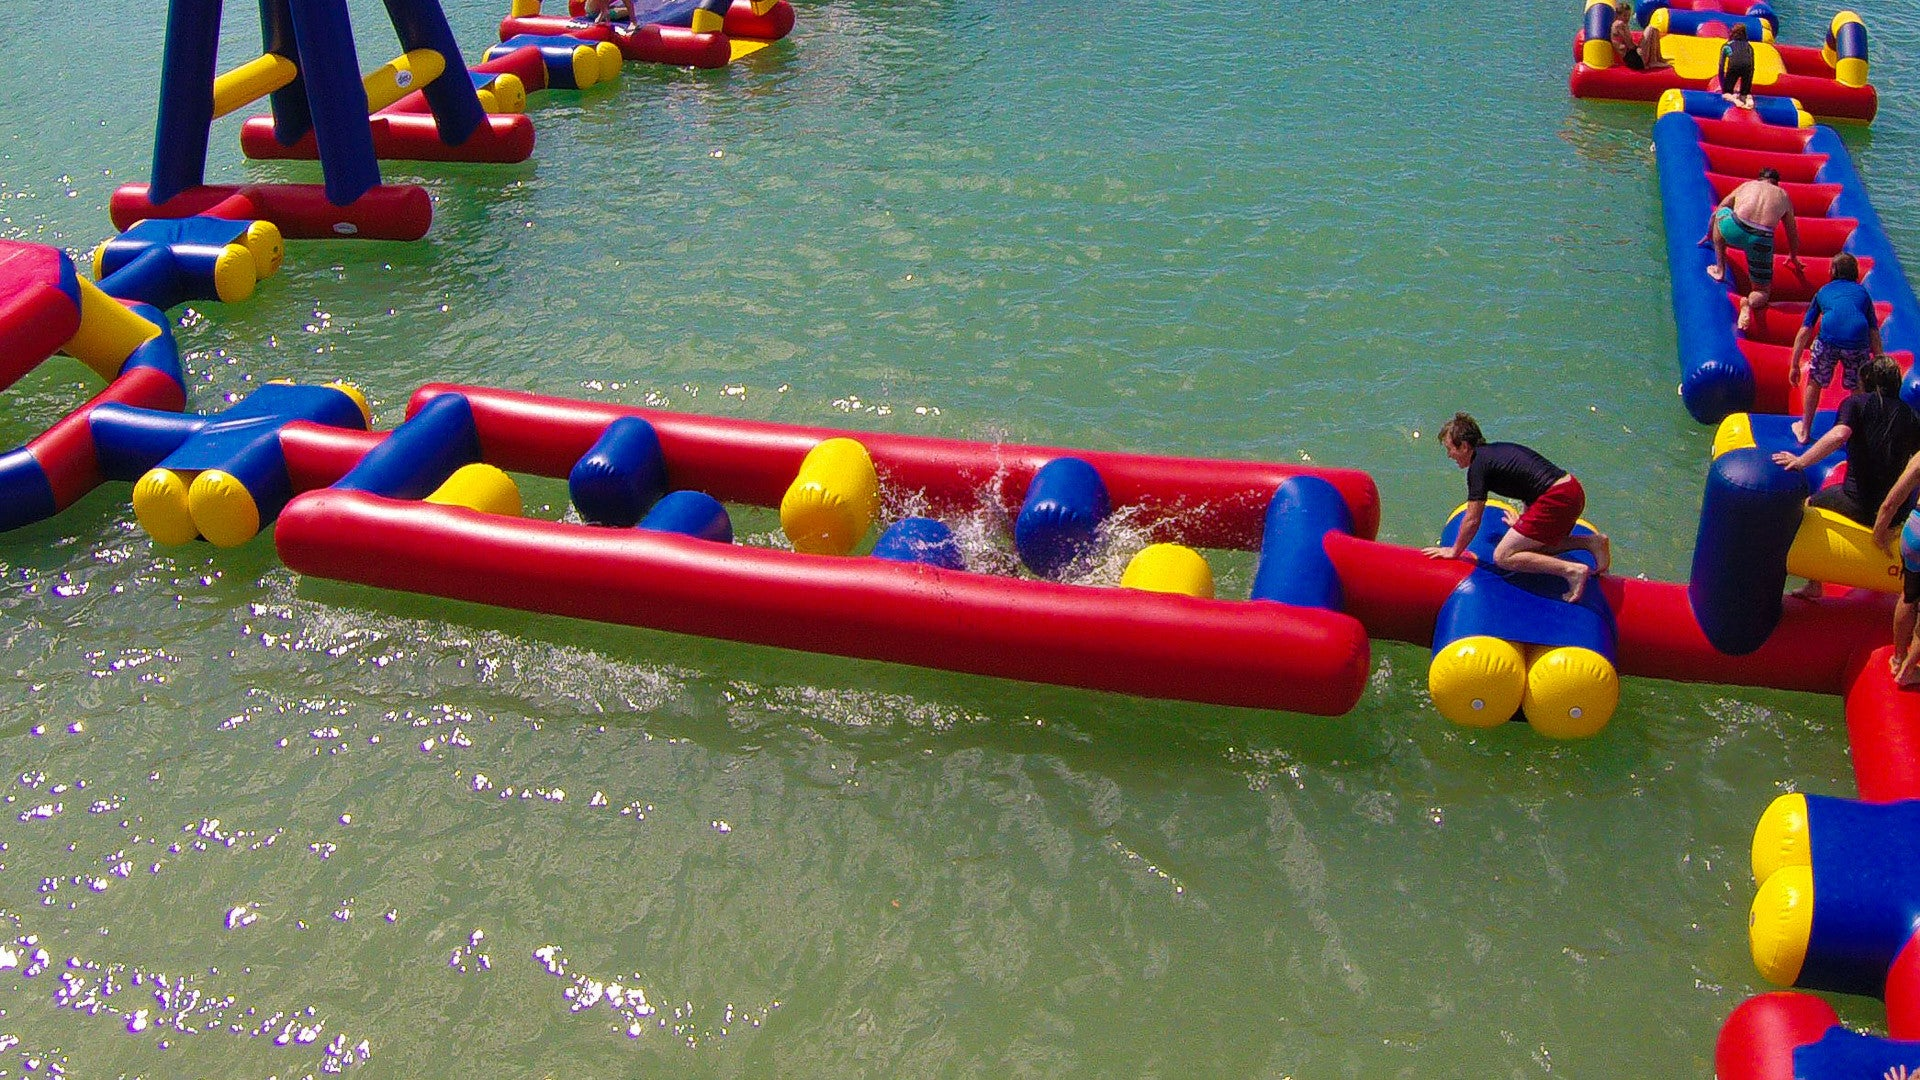 Open Water Inflatable Aqua Park Split Ladder - Aflex Technology - Aqua Adventure Series